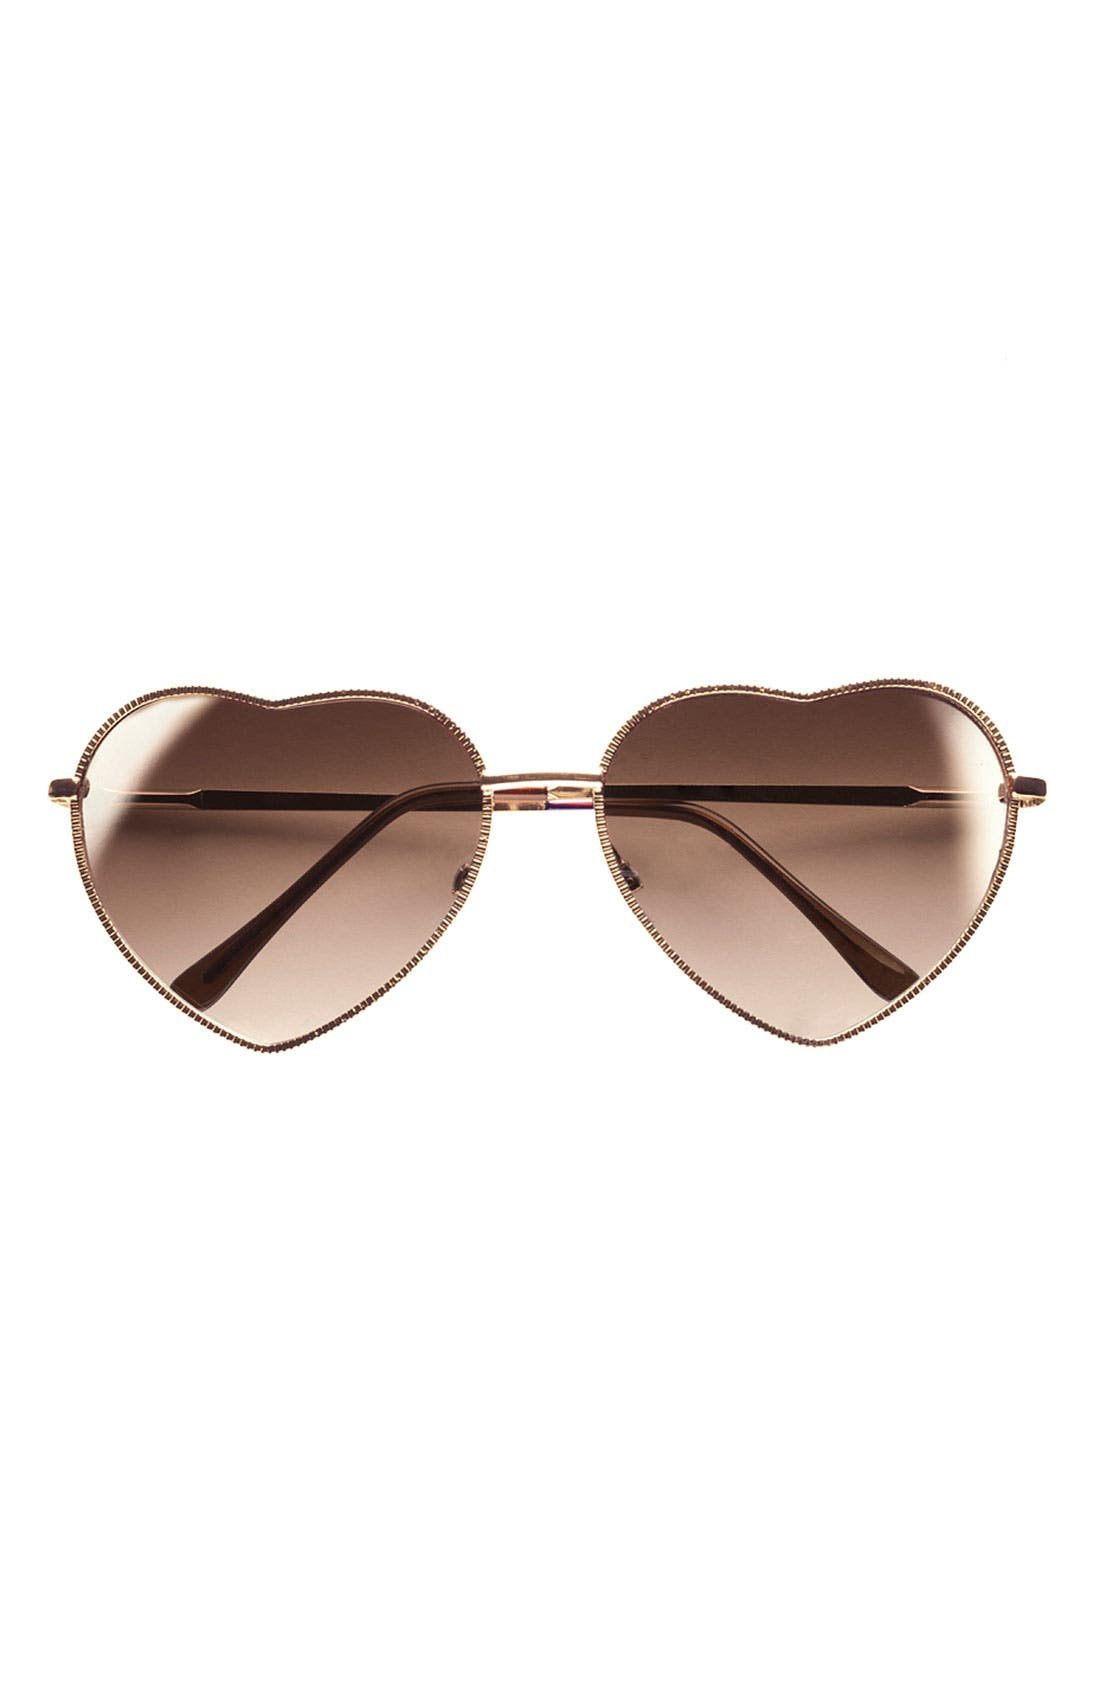 Heart Shaped 58mm Sunglasses,                             Alternate thumbnail 2, color,                             040